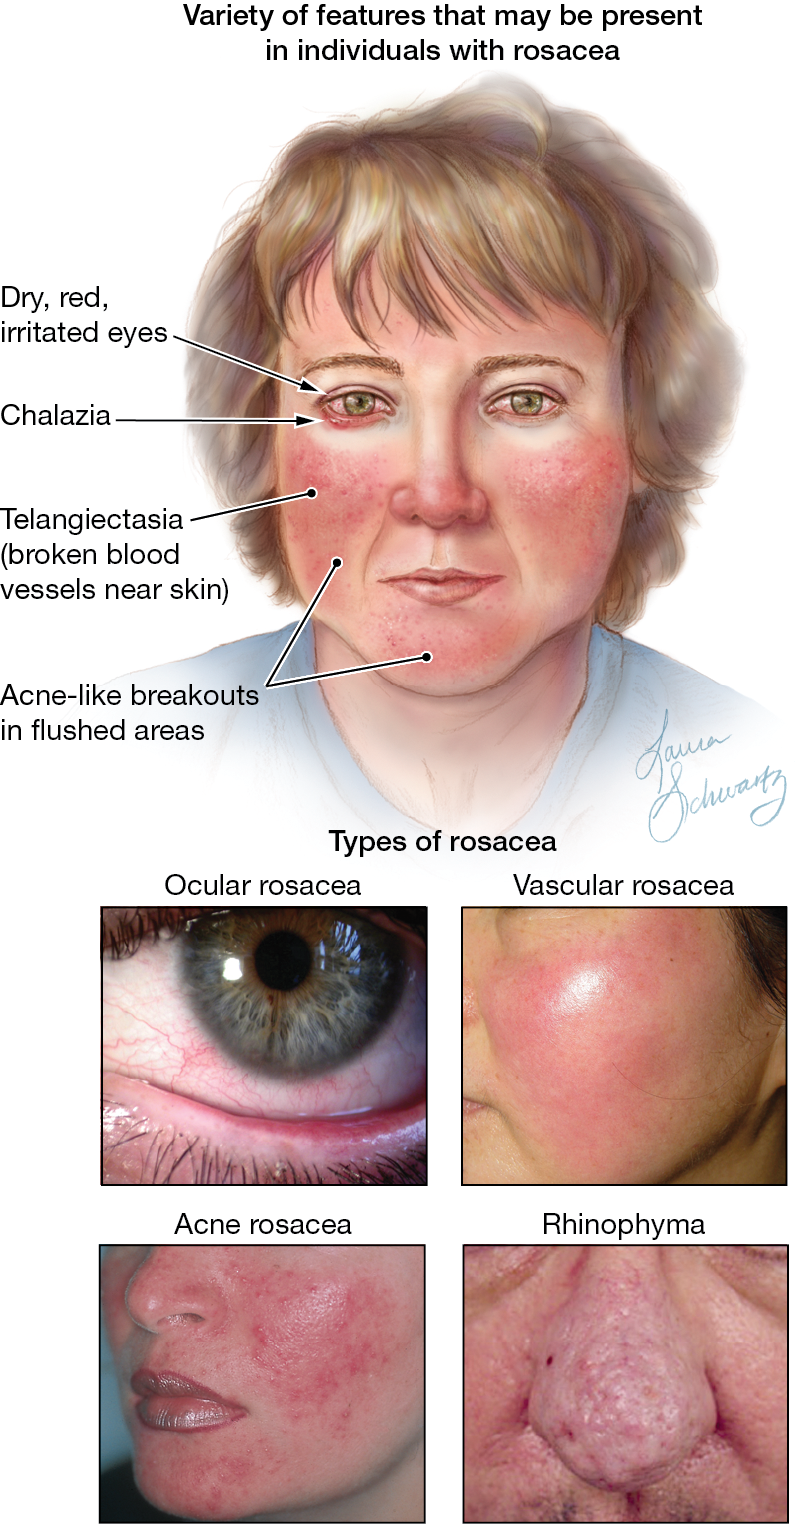 Rosacea With Images Rosacea Treatment Rosacea Symptoms Rosacea